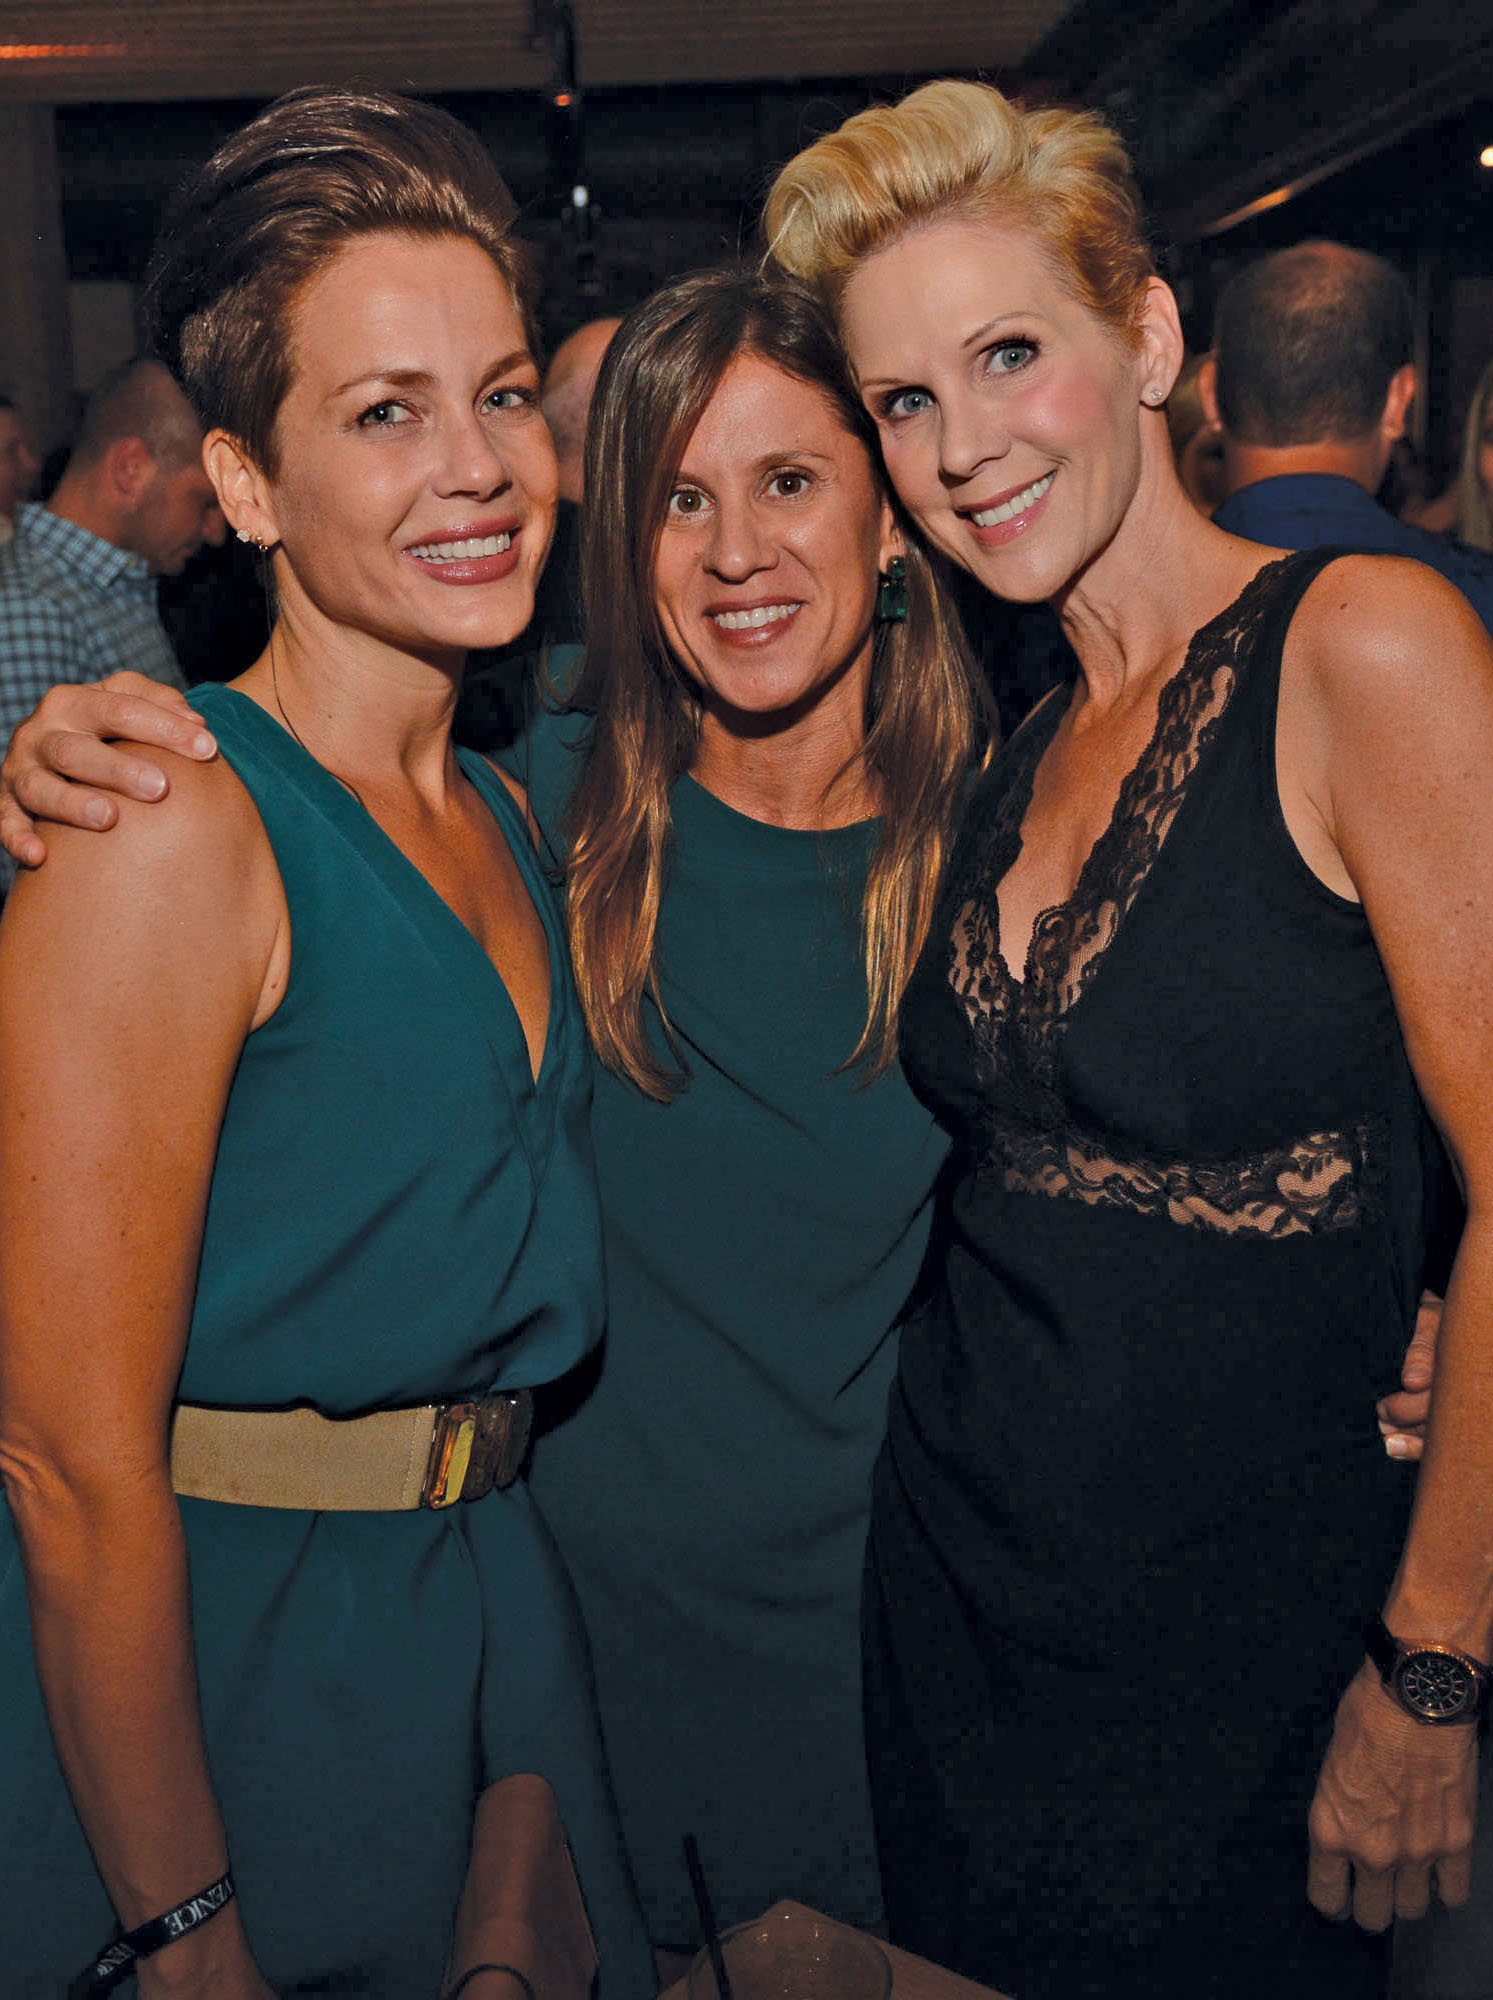 kristin-lovejoy-andrea-scarborough-and-paige-held-City-Cool-Boat-Yard-Fort-Lauderdale-Venice-Magazine